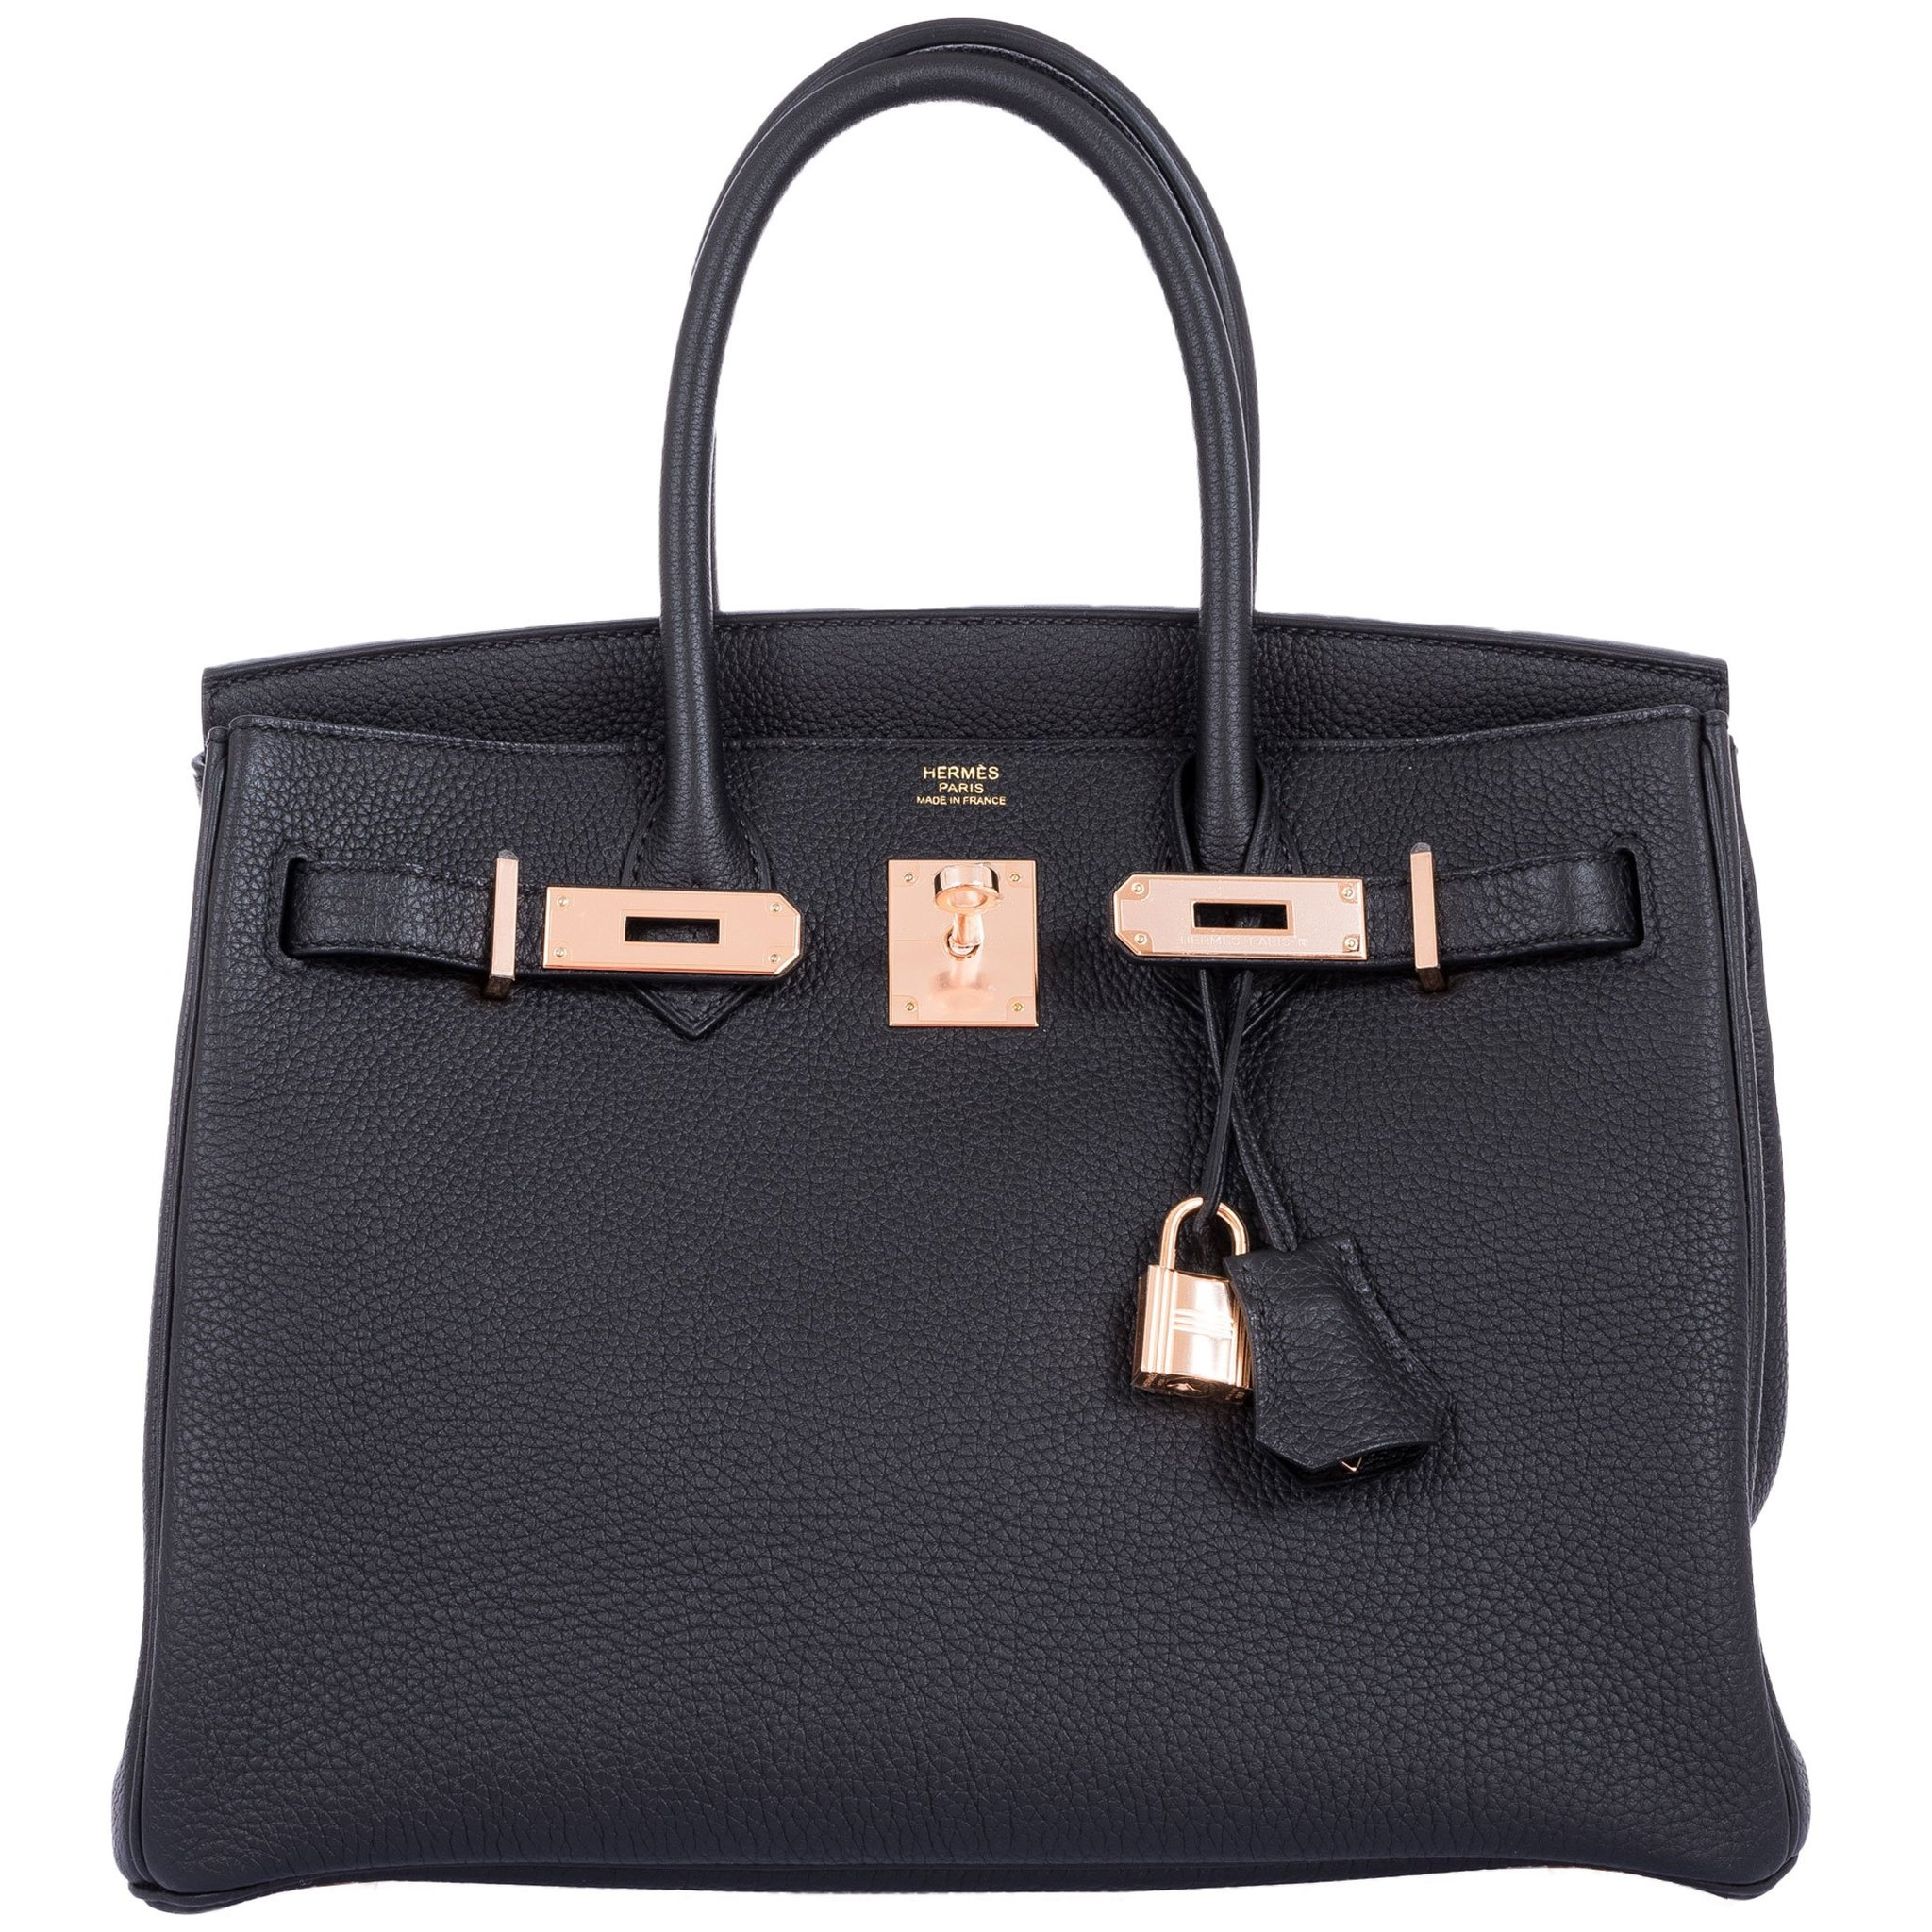 Hermes Birkin 30 Black Togo Rose Gold Hardware 2019